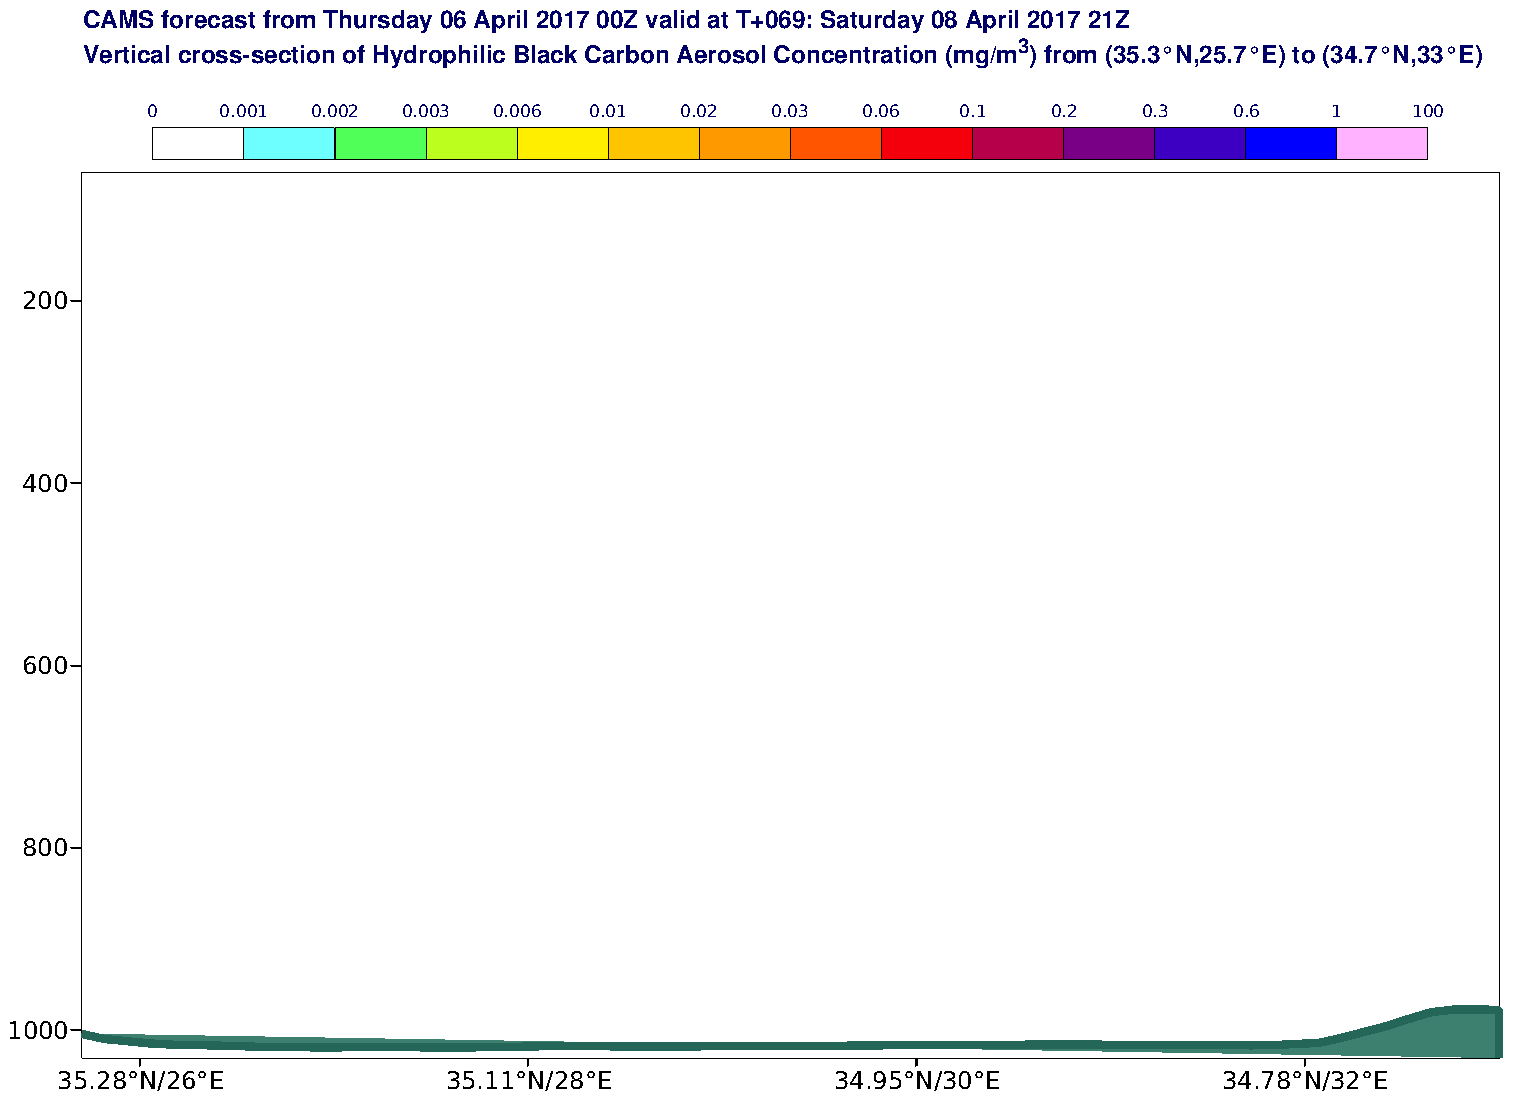 Vertical cross-section of Hydrophilic Black Carbon Aerosol Concentration (mg/m3) valid at T69 - 2017-04-08 21:00